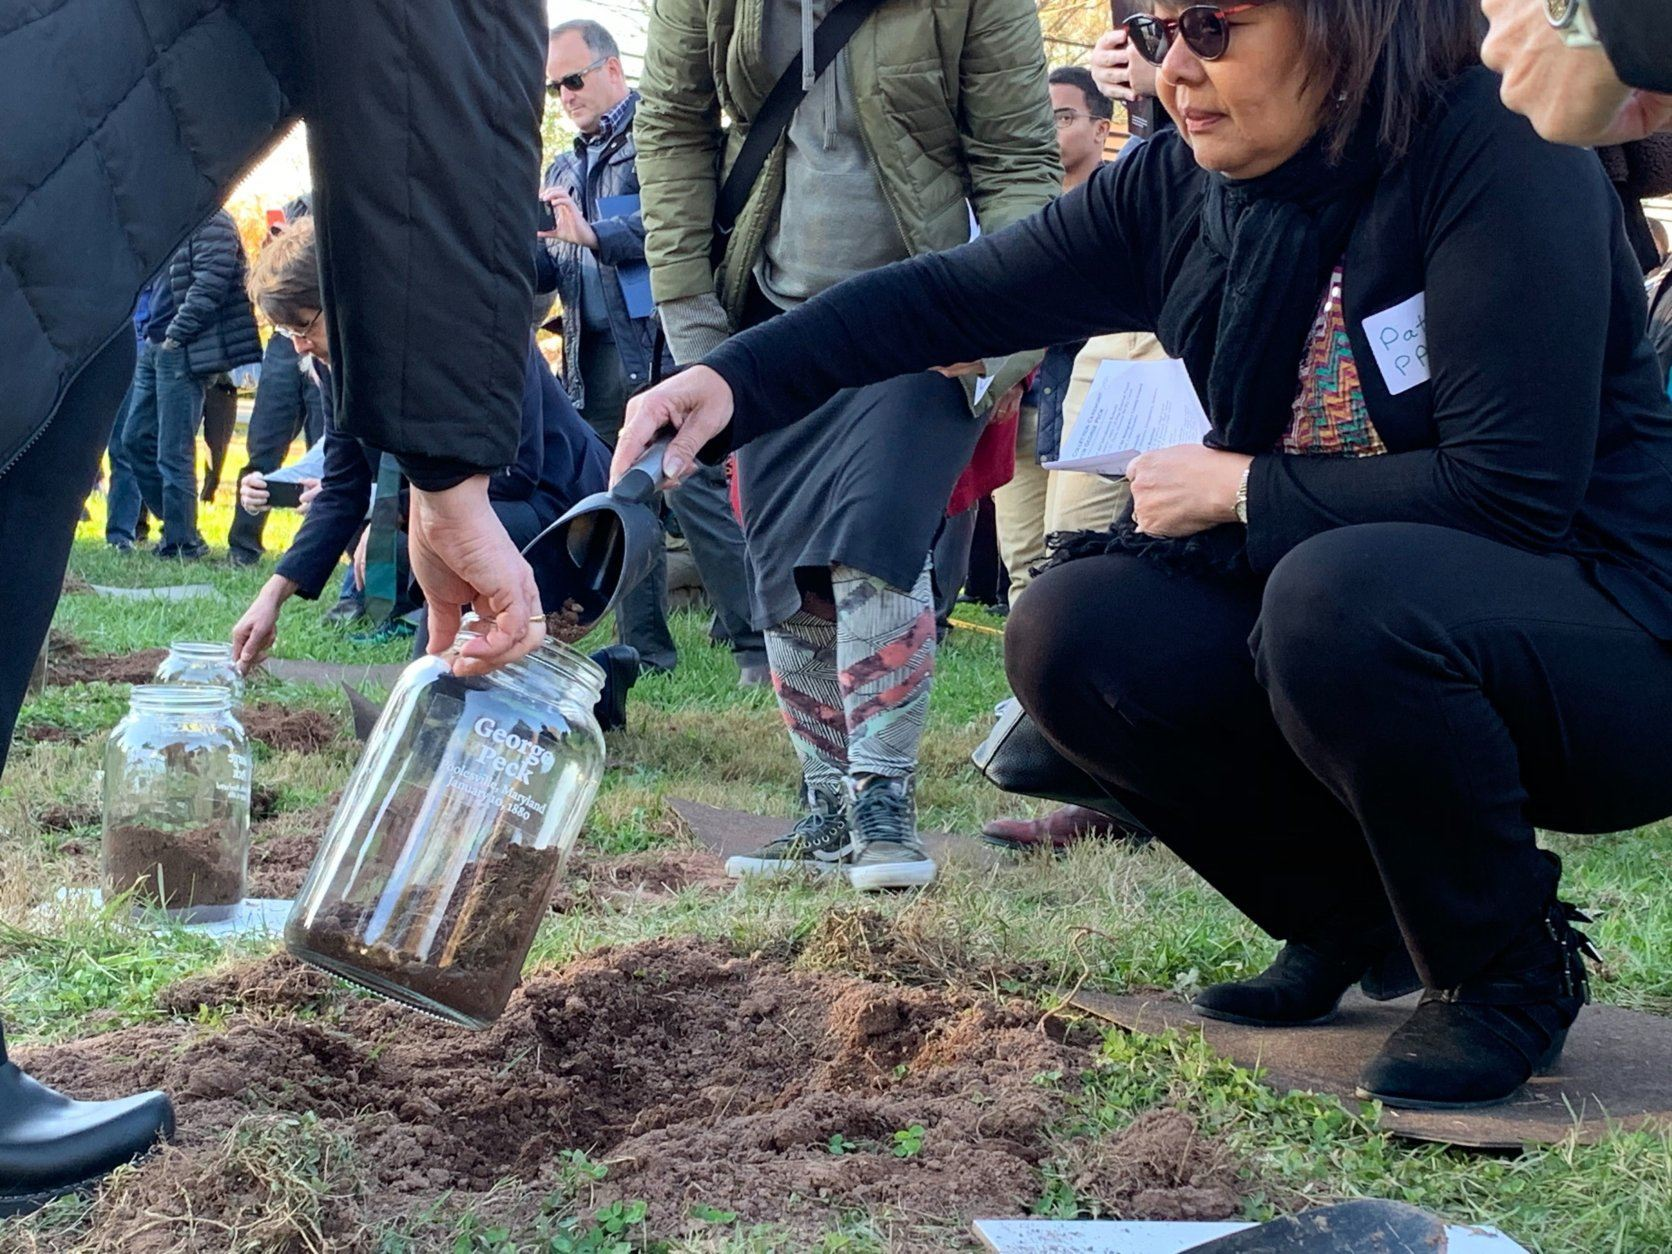 A large group gathered in Montgomery County Sunday afternoon to help reconcile with and heal wounds from the County's past...by remembering the life of a man who died by lynching in 1880